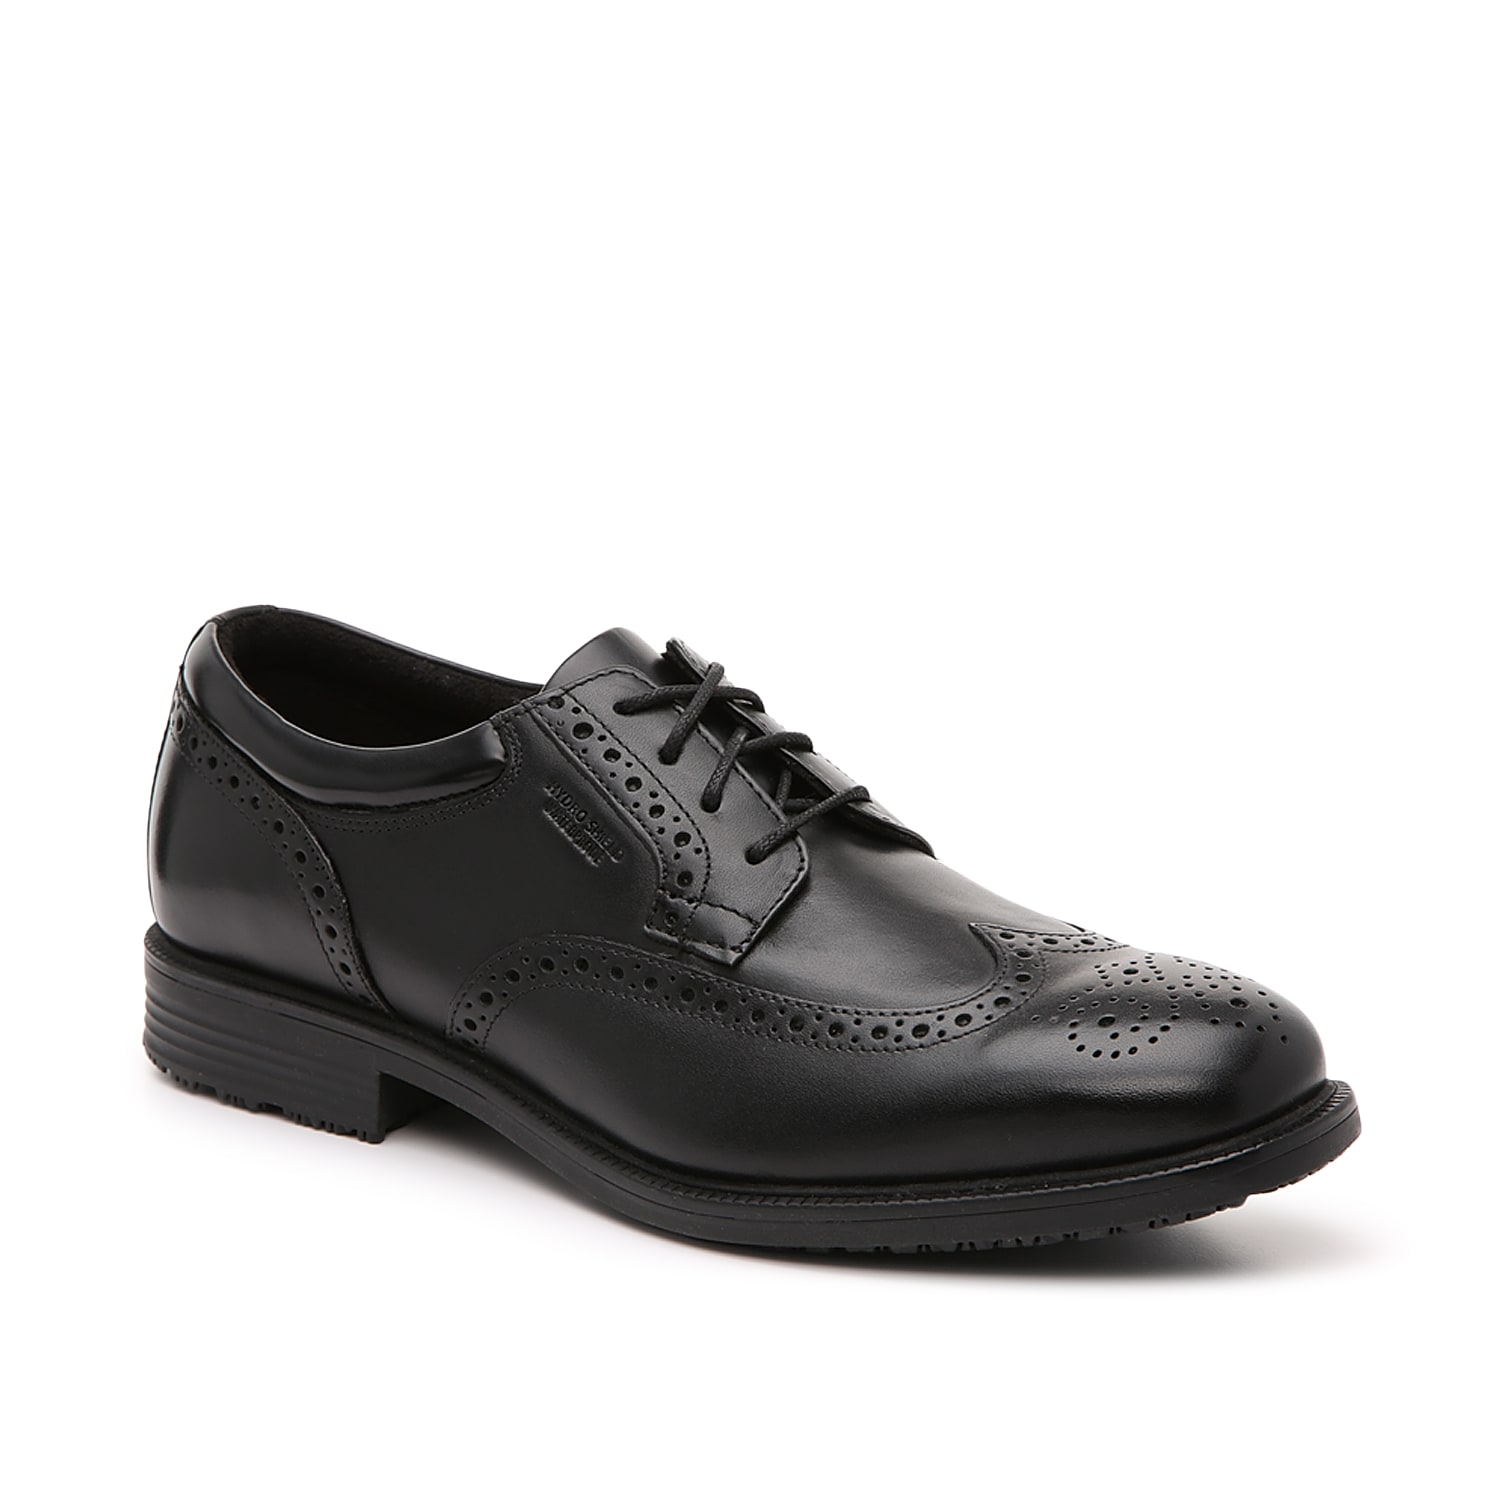 Stay comfortable throughout the workday in the Essential oxford from Rockport. These lace-ups feature a durable leather design that treated with Hydro-Shield waterproof protection. The truTECH® cushioned footbed ensures optimal support.